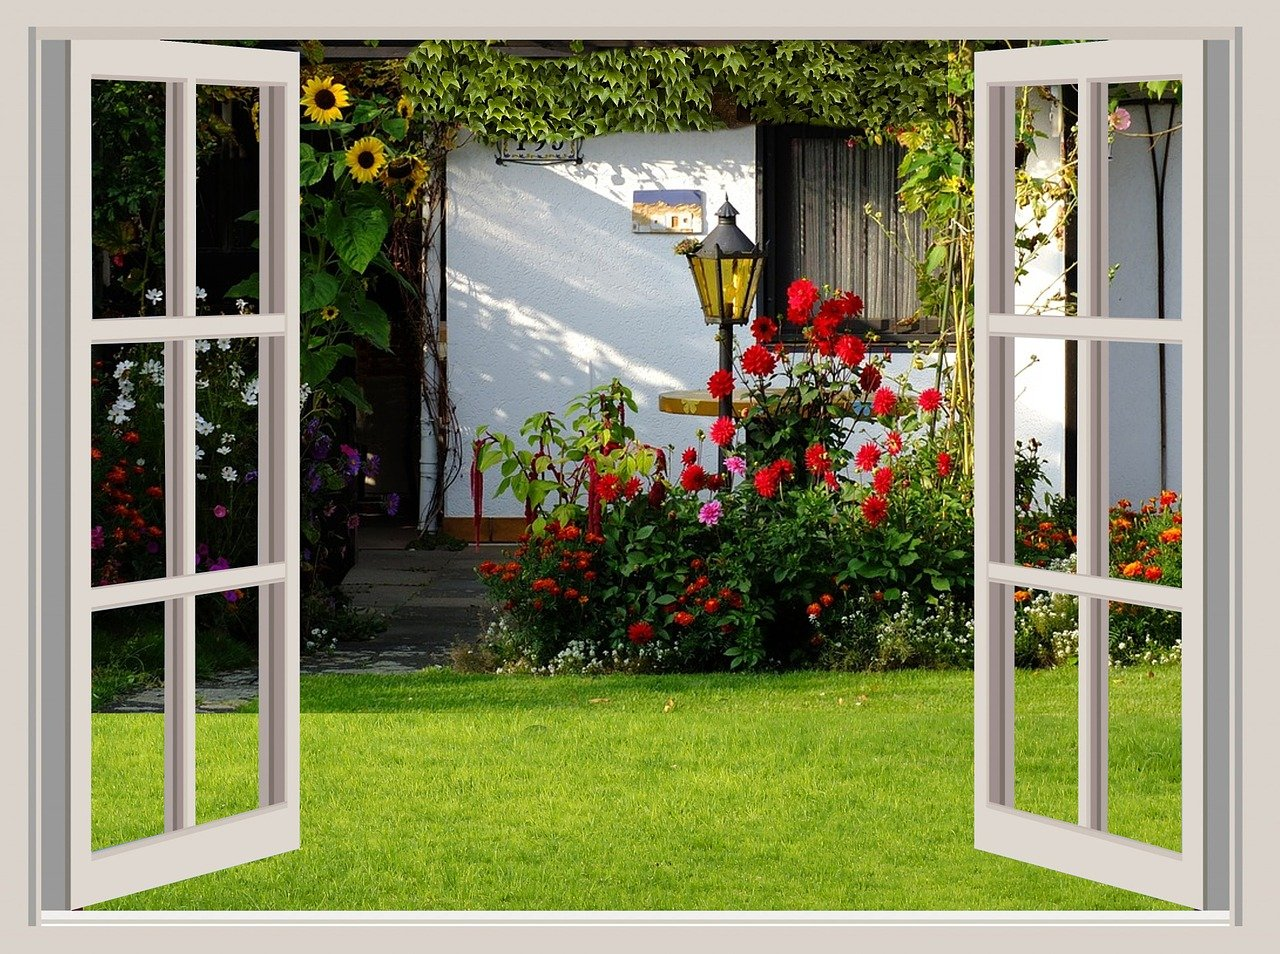 Create The Look of Charming Cottage Gardens in Your Backyard